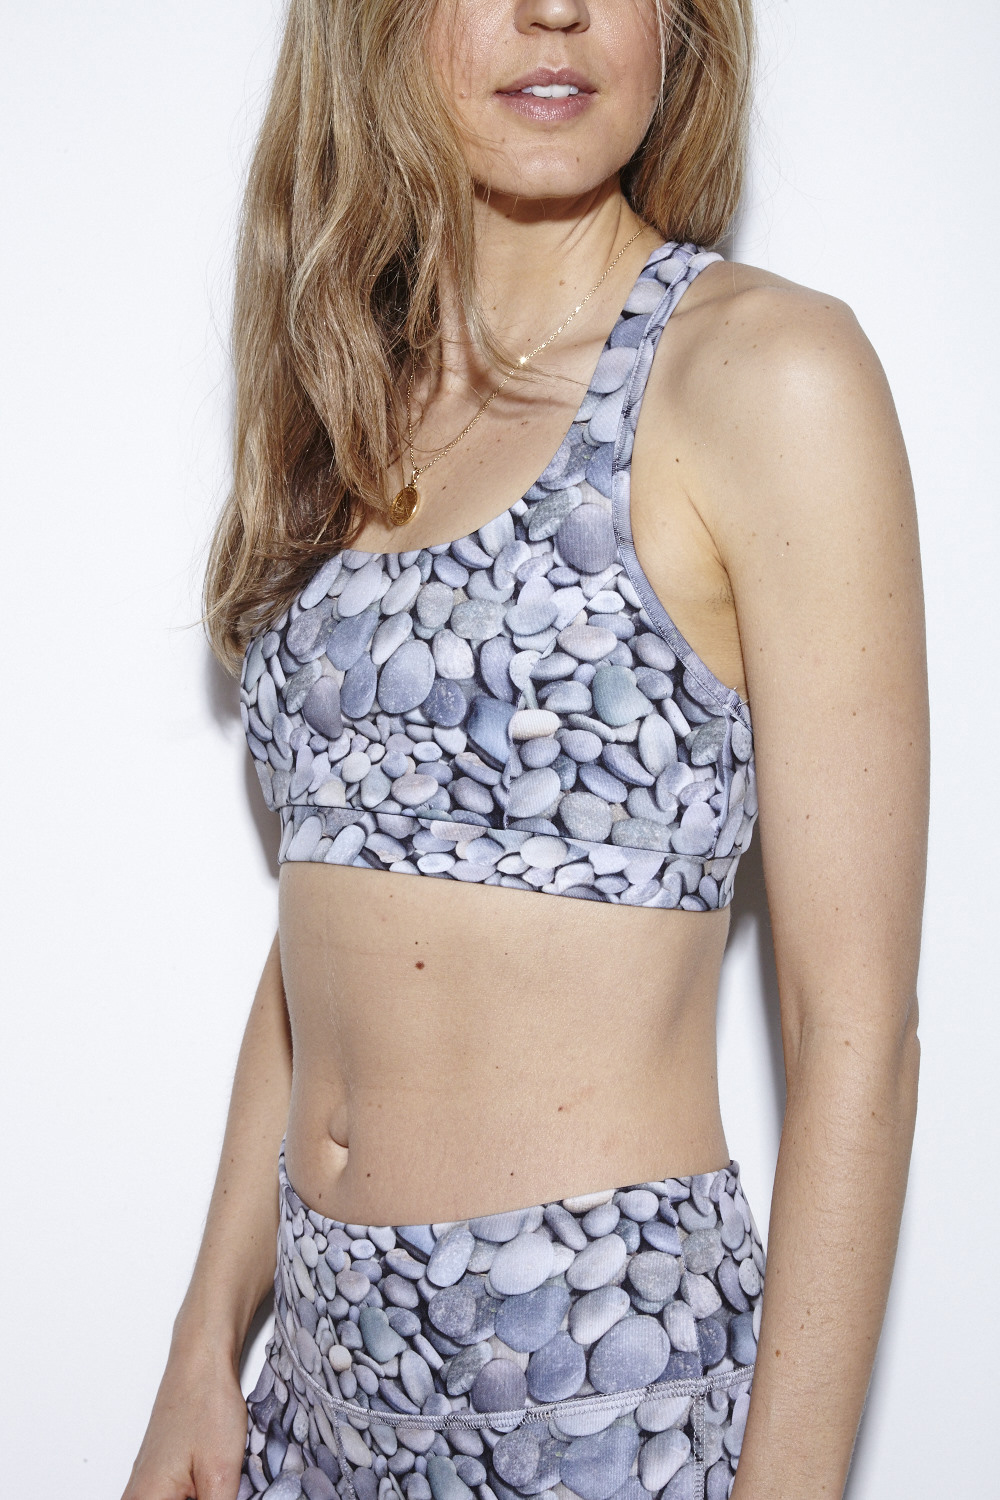 Cult-Fave Silver Lake Brand The Odells Launches Activewear Collection